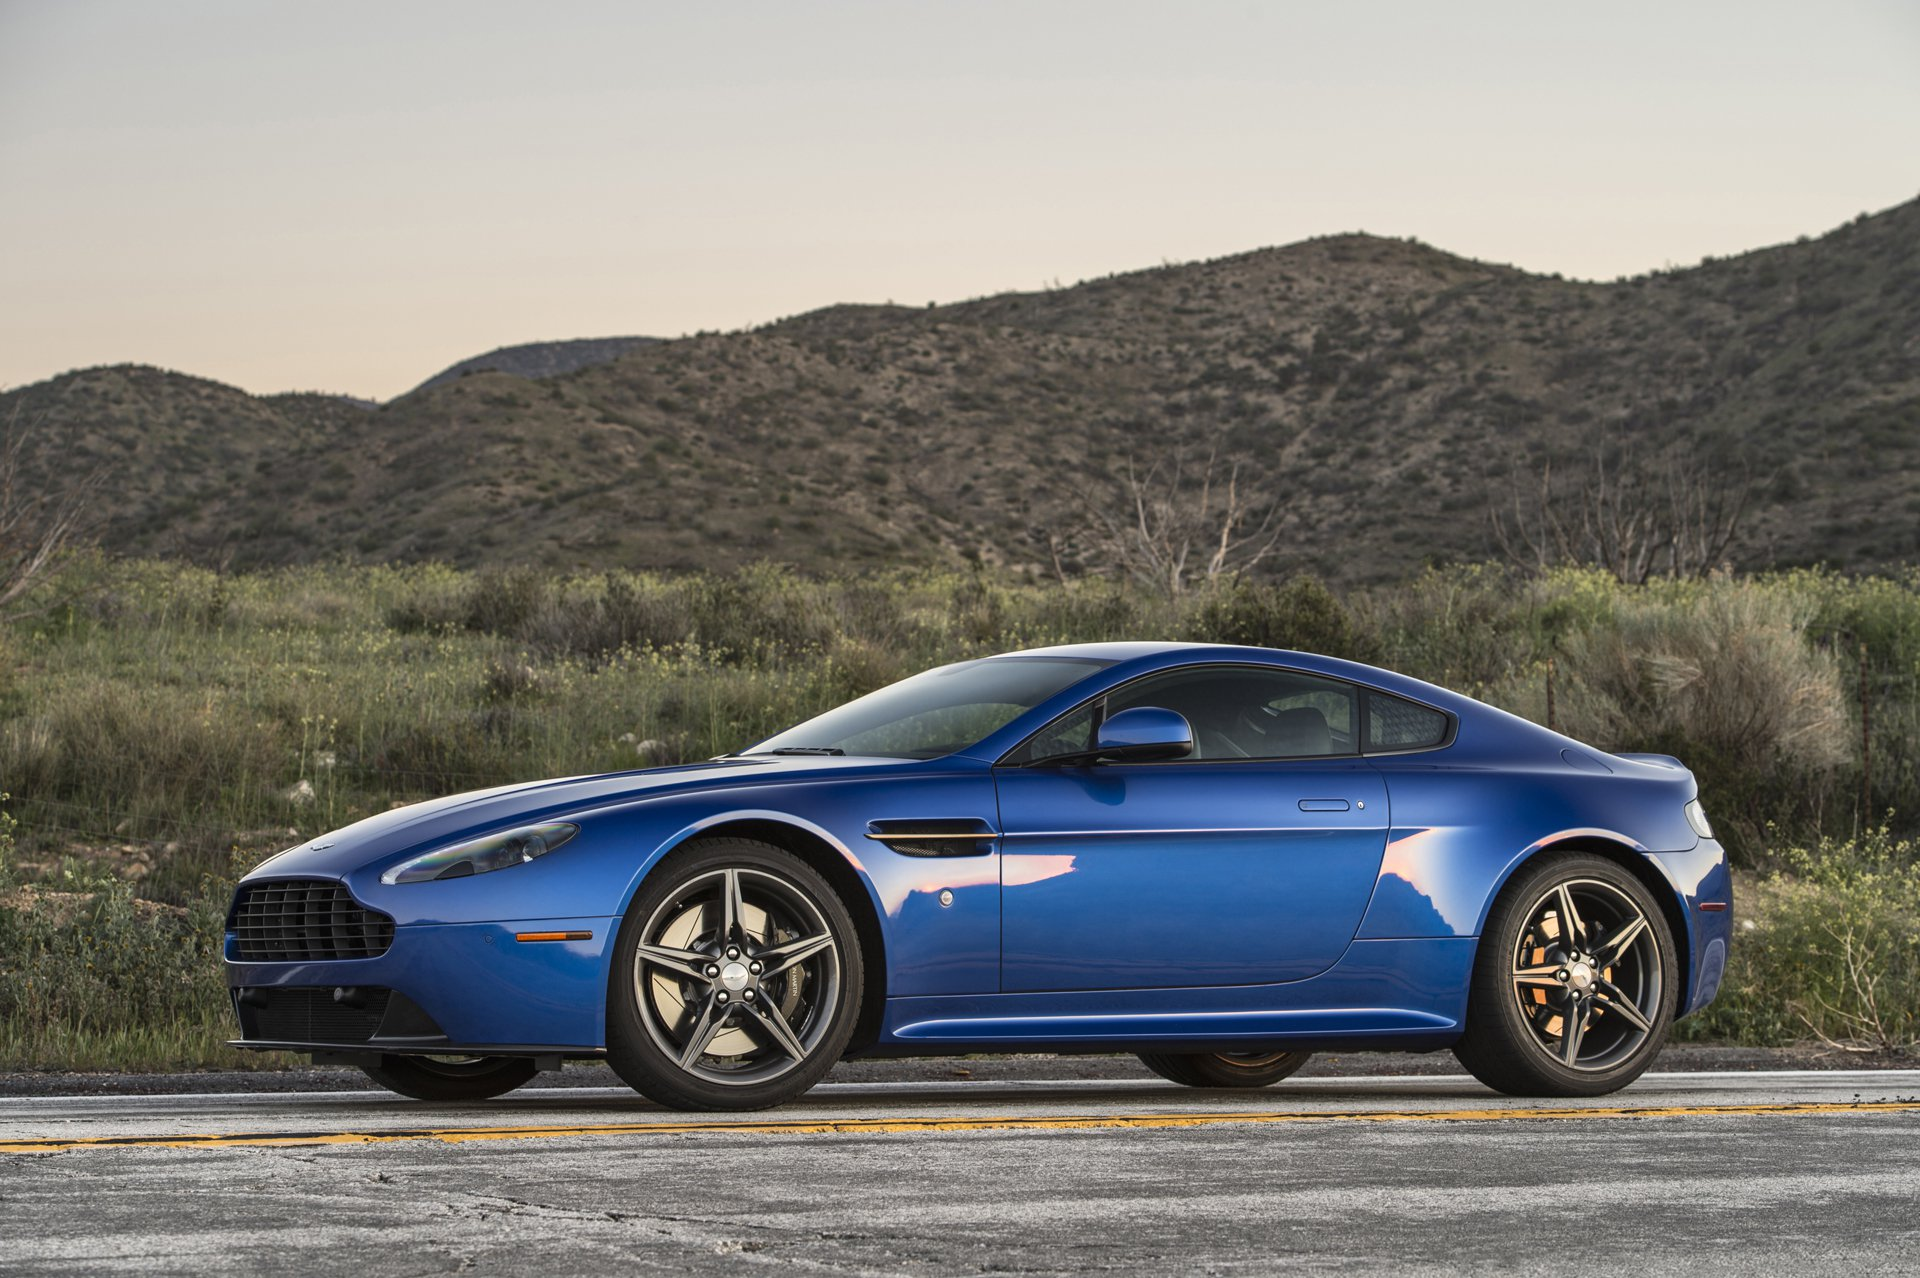 Heres What A New Aston Martin Vantage GTS Will CostIf You Can Get - Aston martin cost